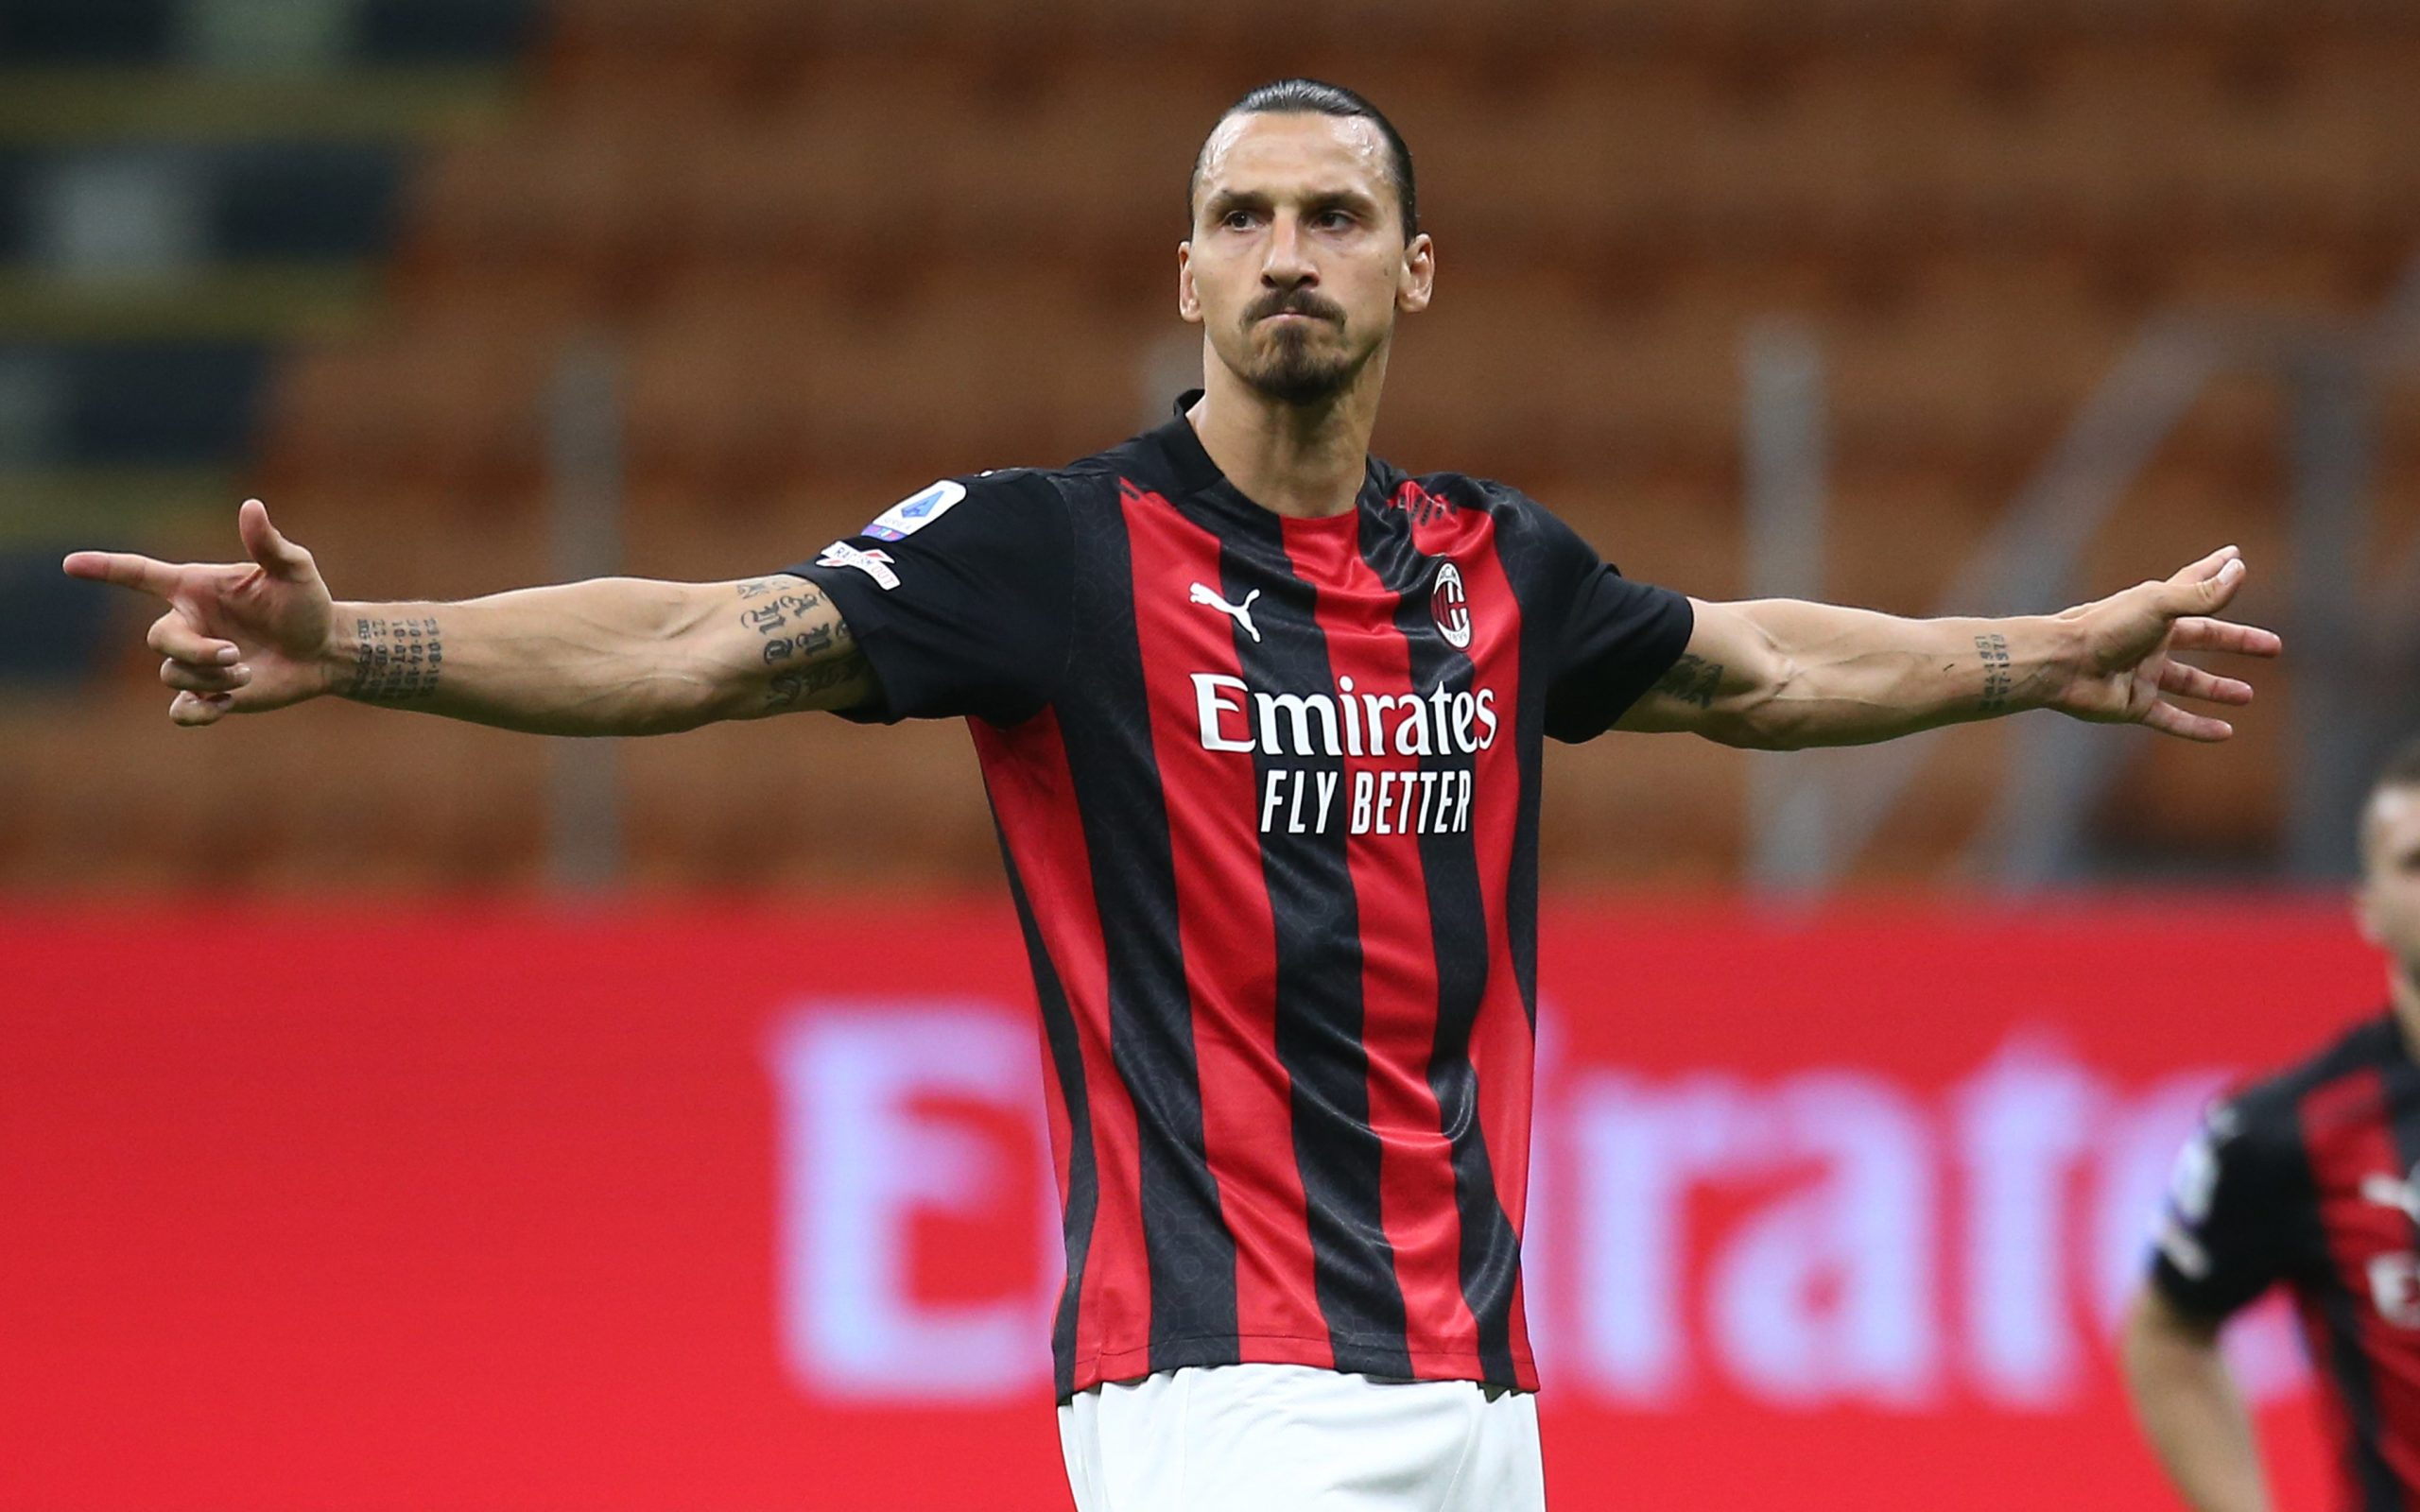 Zlatan Ibrahimovic gives AC Milan the right start | CricketSoccer